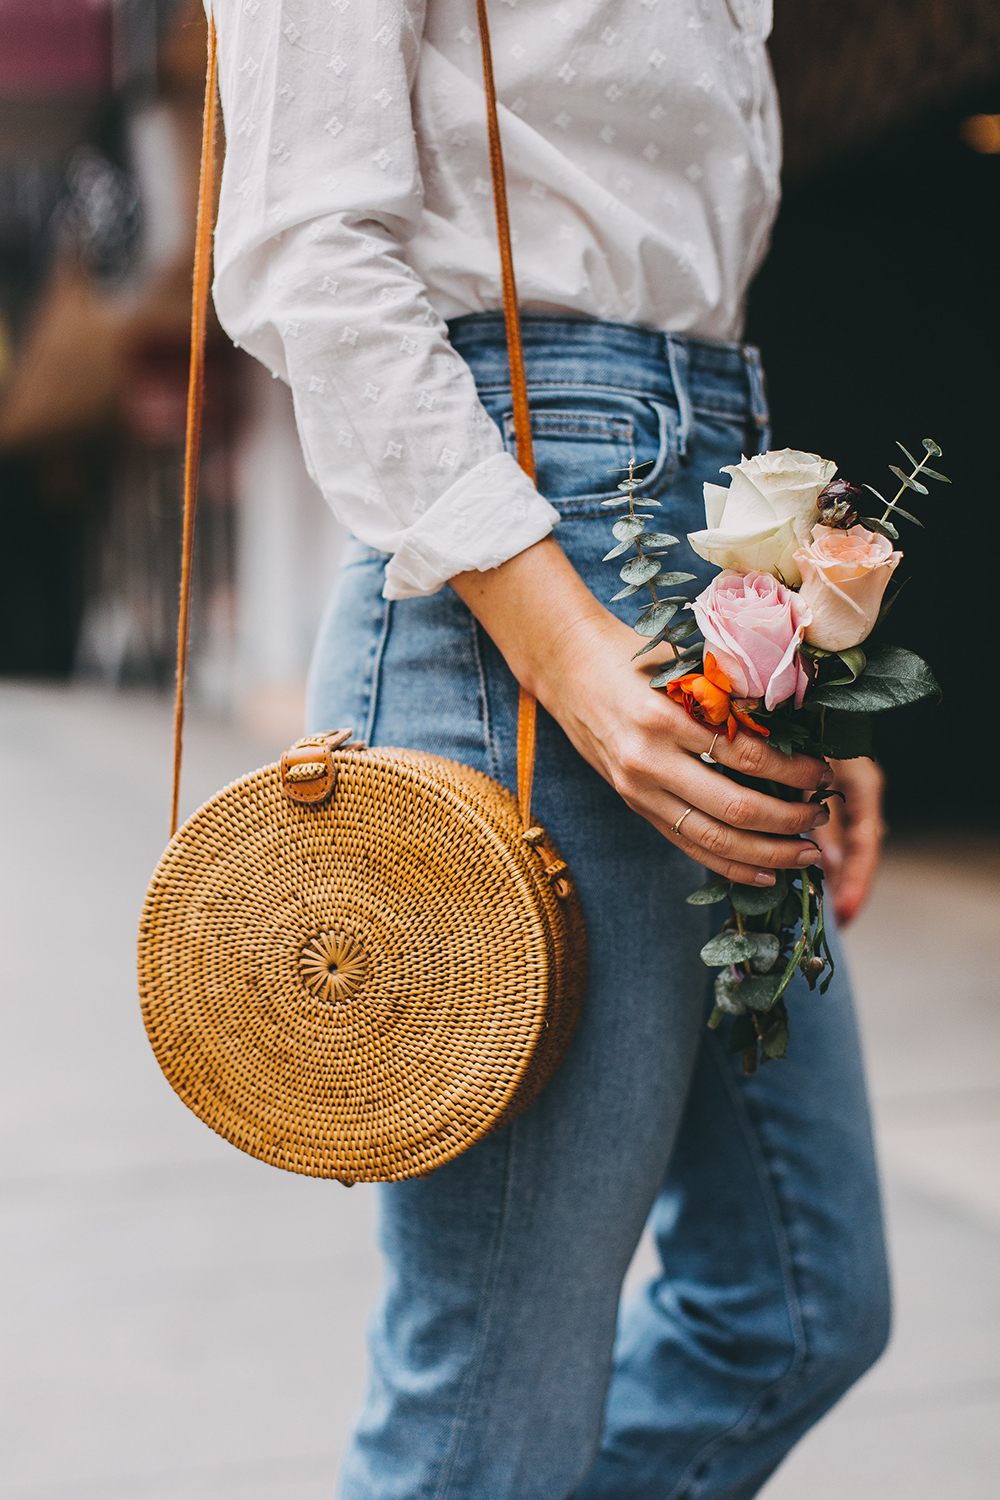 livvyland-blog-olivia-watson-austin-texas-fashion-style-blogger-sezane-white-eyelet-blouse-kick-flare-jeans-simple-spring-outfit-13